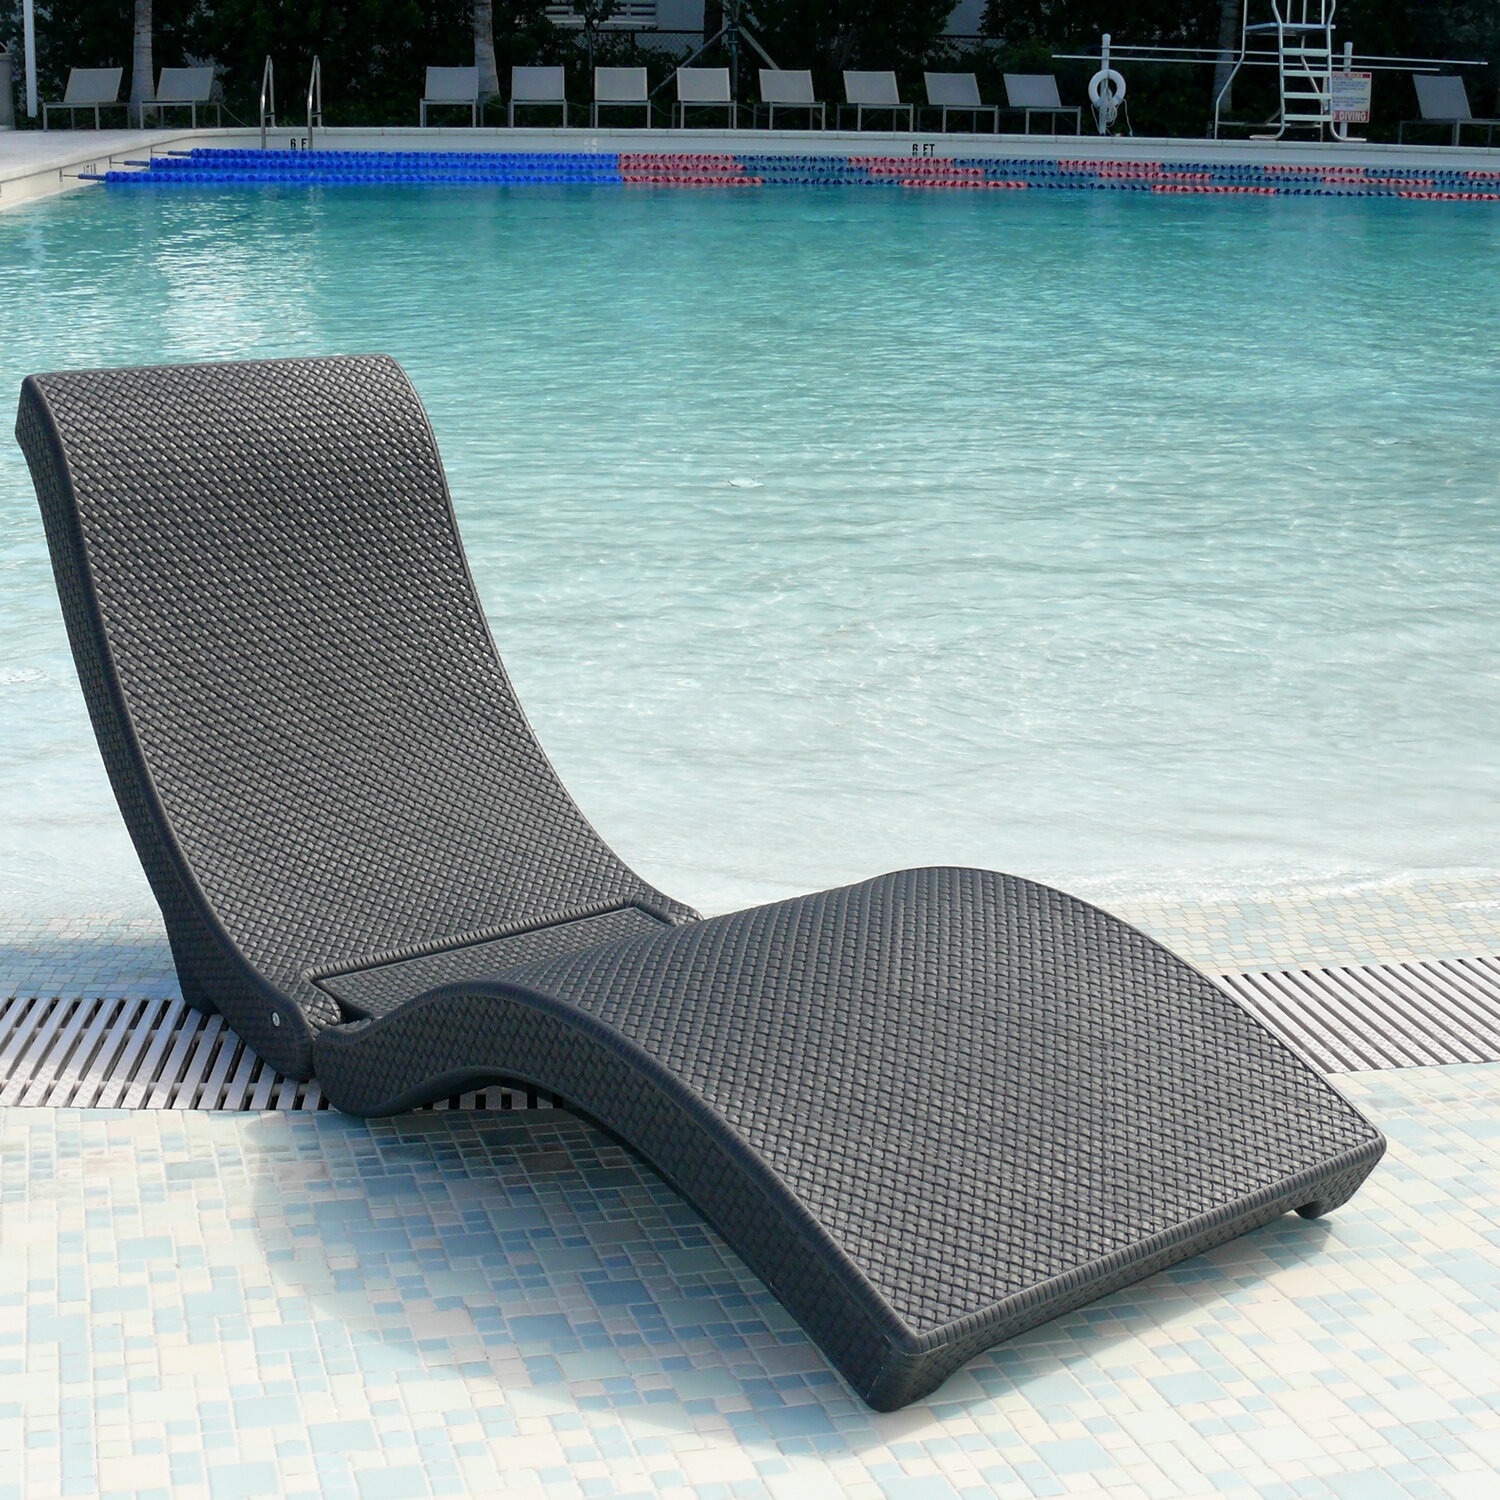 ... The Splash Chaise Lounge Chair Outdoor Beach Sun Lawn Patio Pool New